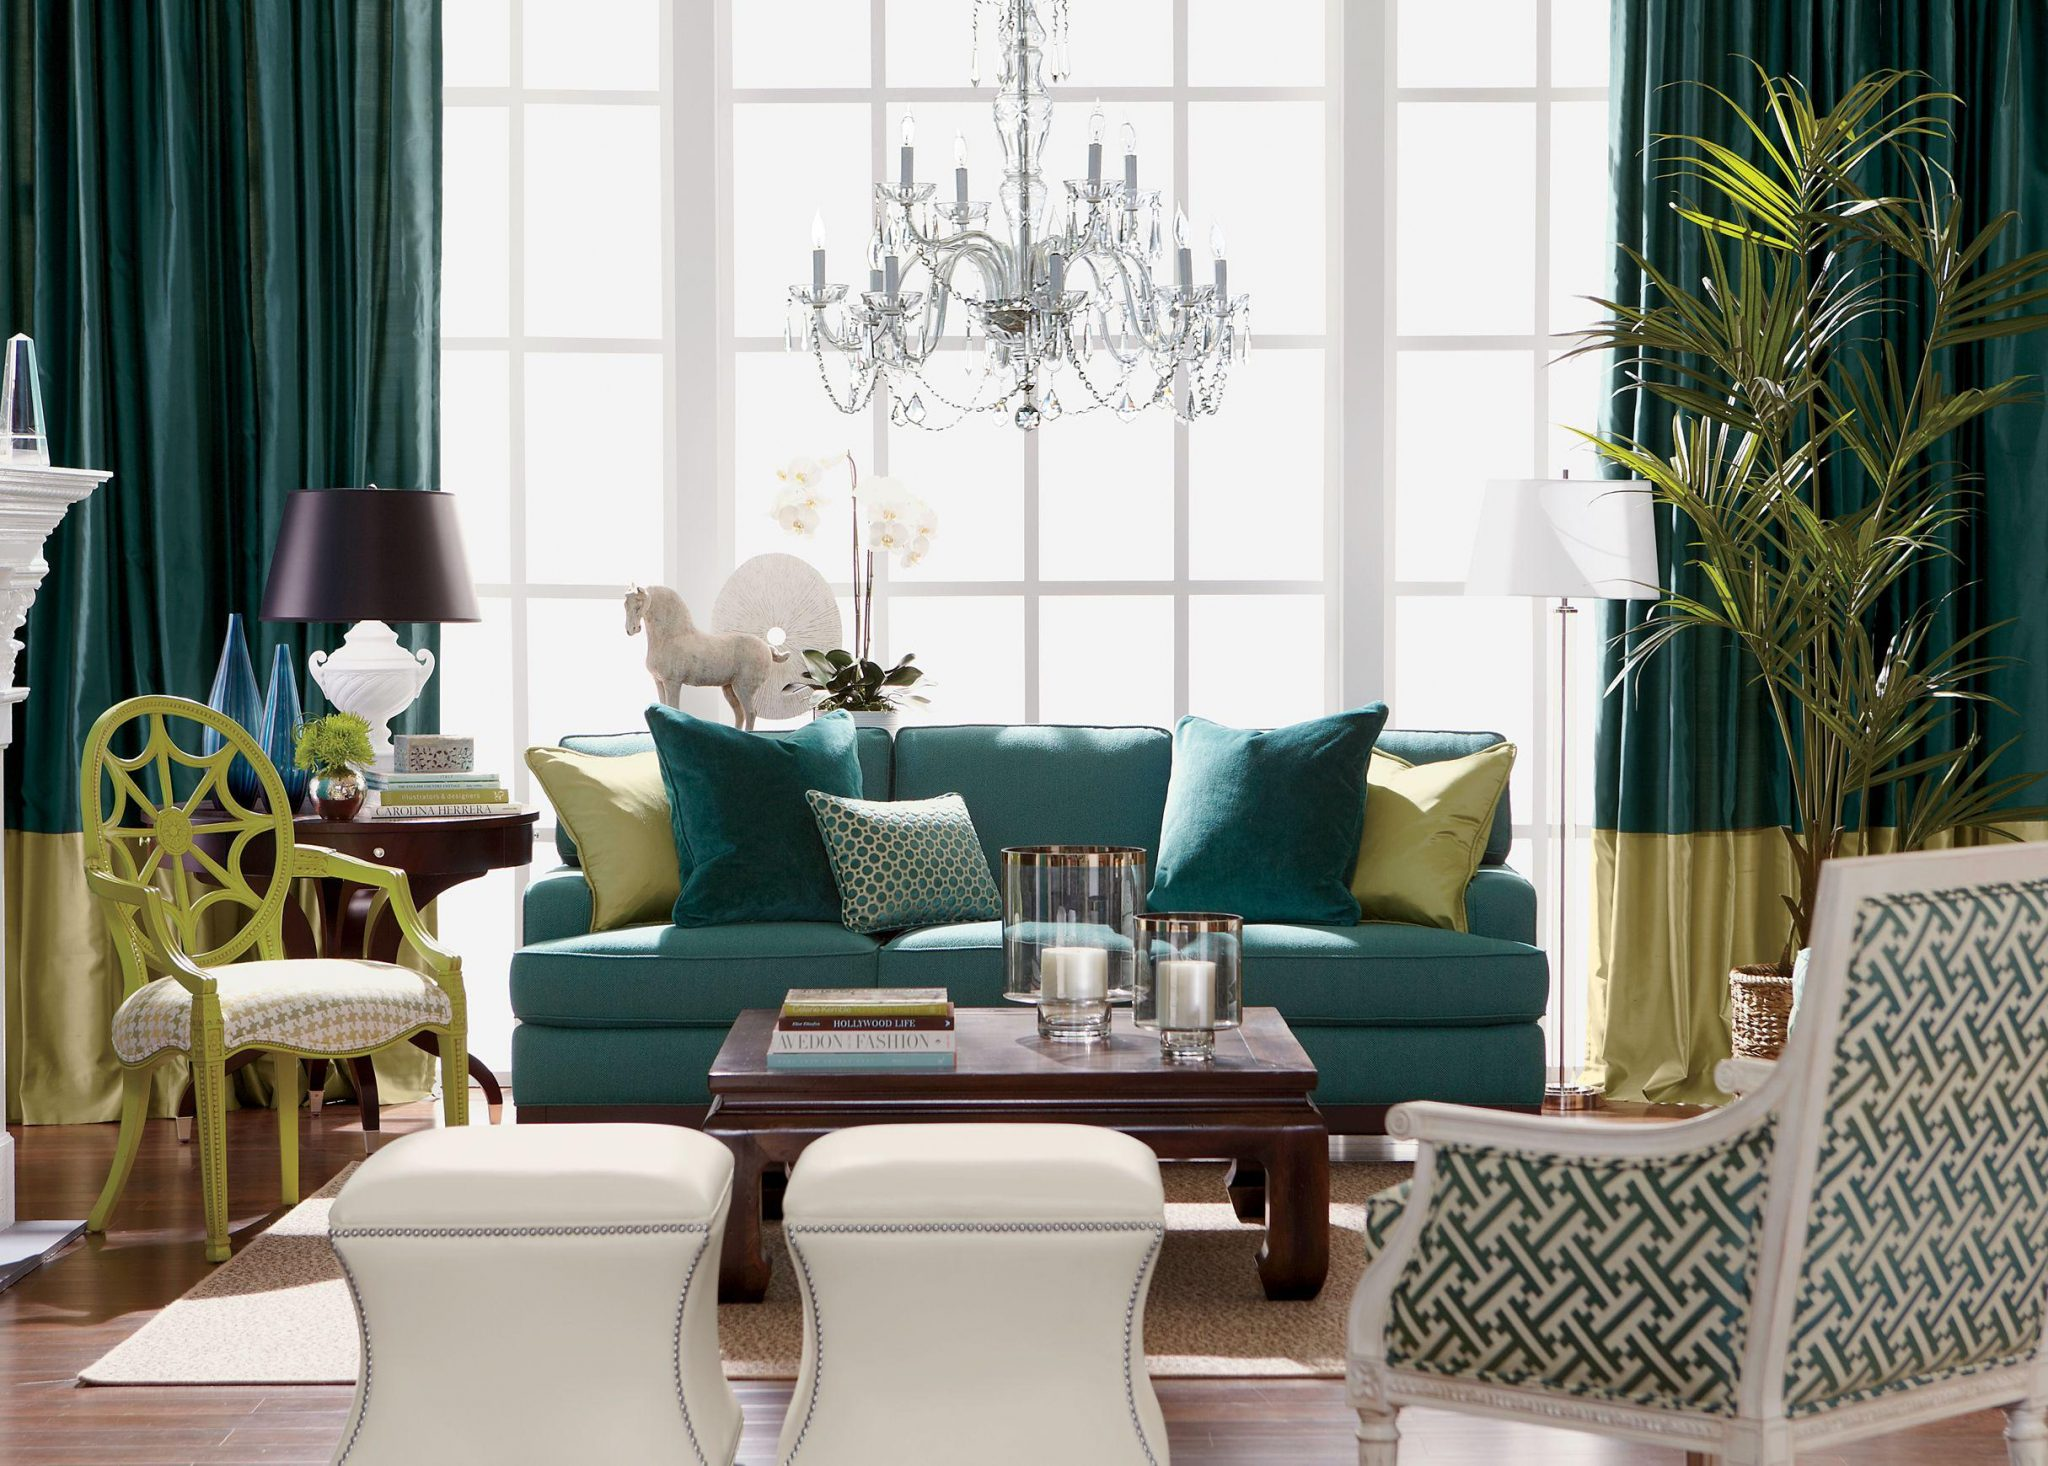 Magnificent blue-green living area